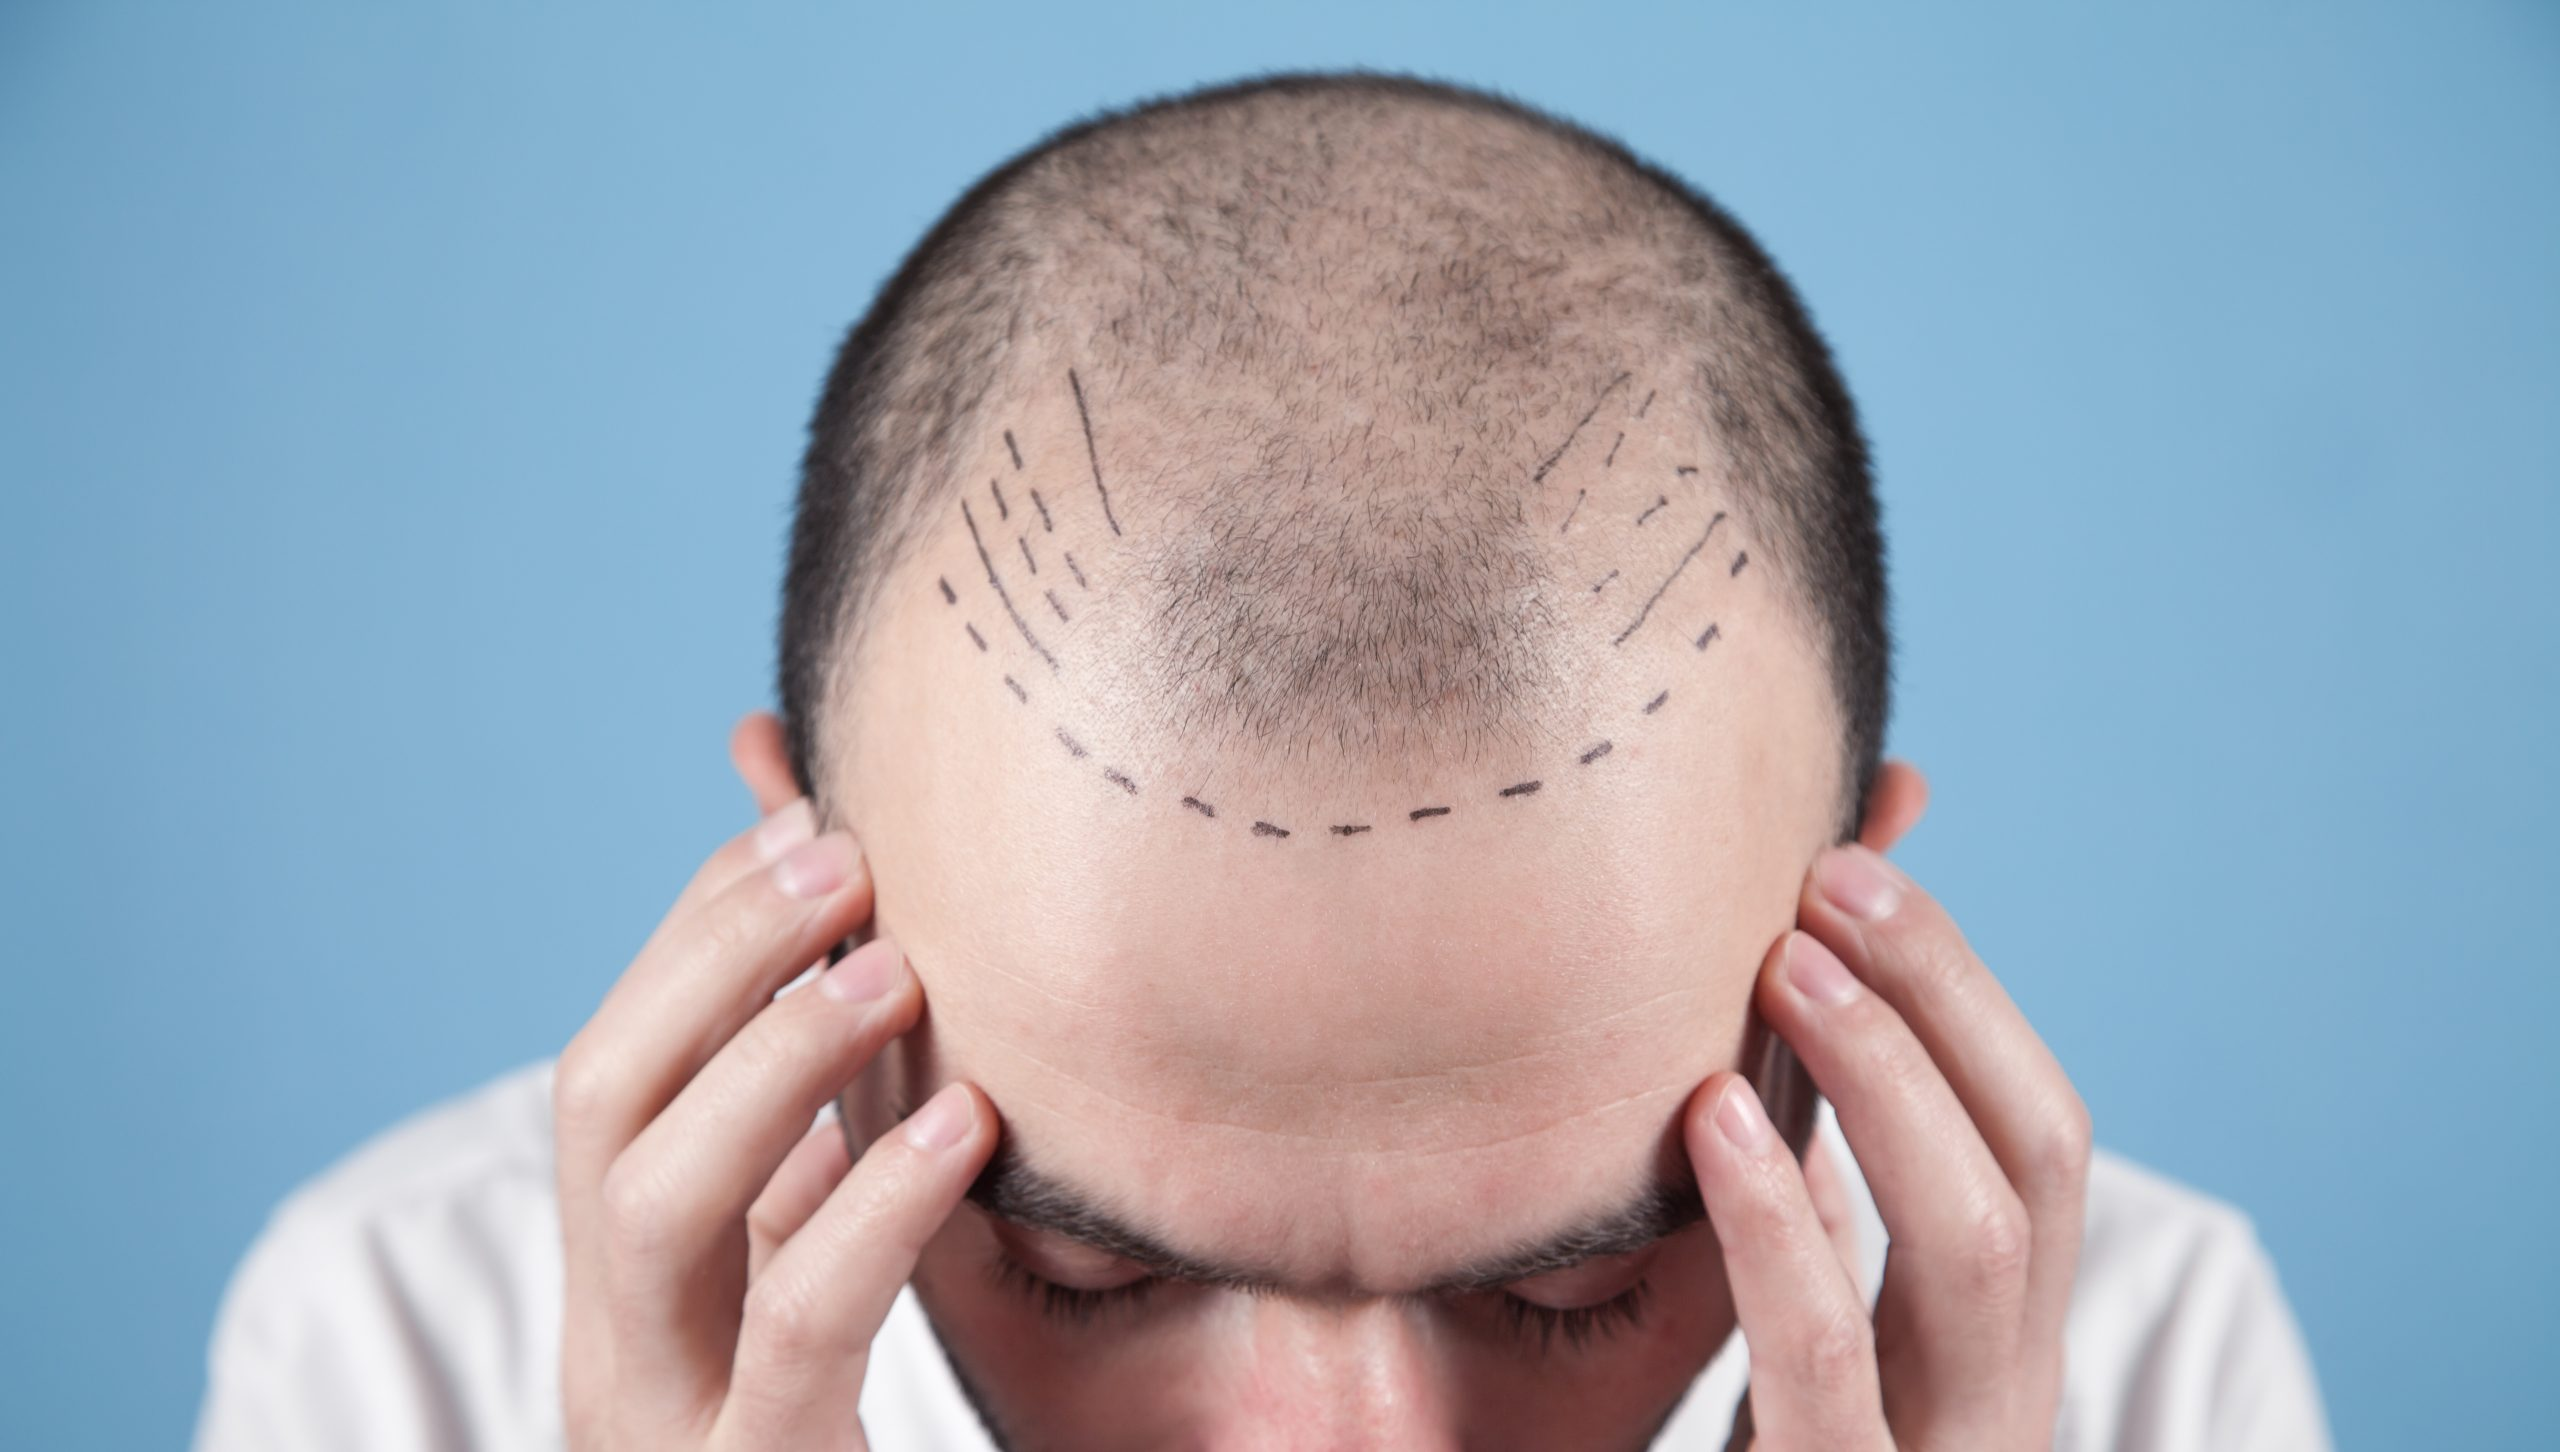 Hair Transplant: The New Male 'Must-Have' Procedure